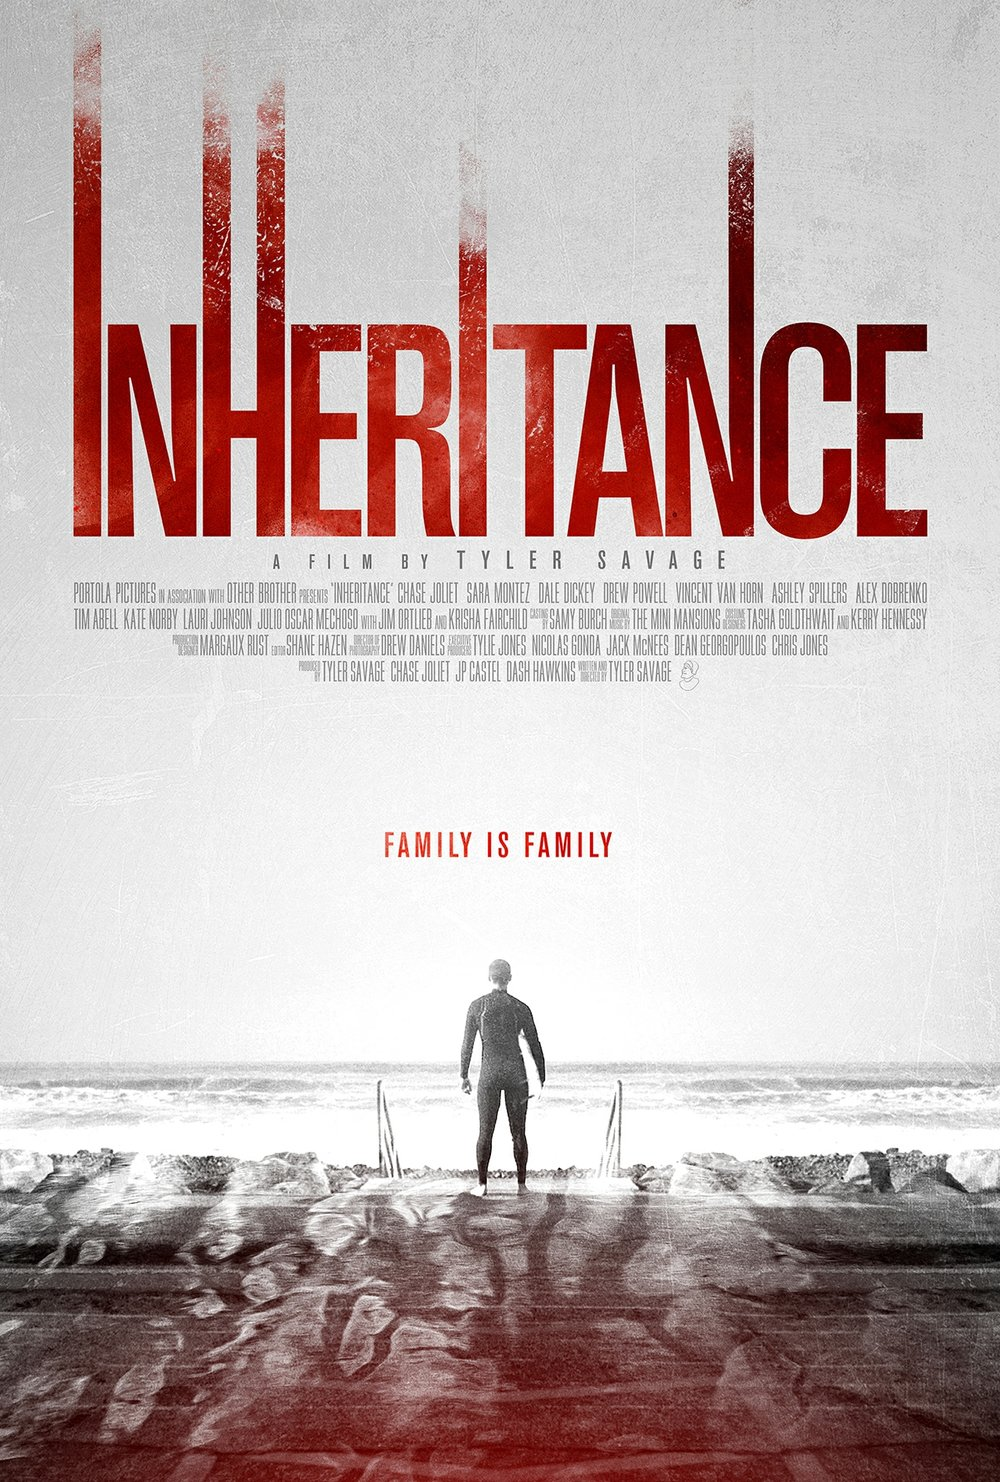 Tickets:   https://danceswithfilms.com/inheritance/     Dances With Films: Friday  , June 2, 2017 TCLChinese   6 -   9:30 pm   6801 Hollywood Blvd Hollywood  , CA 90028